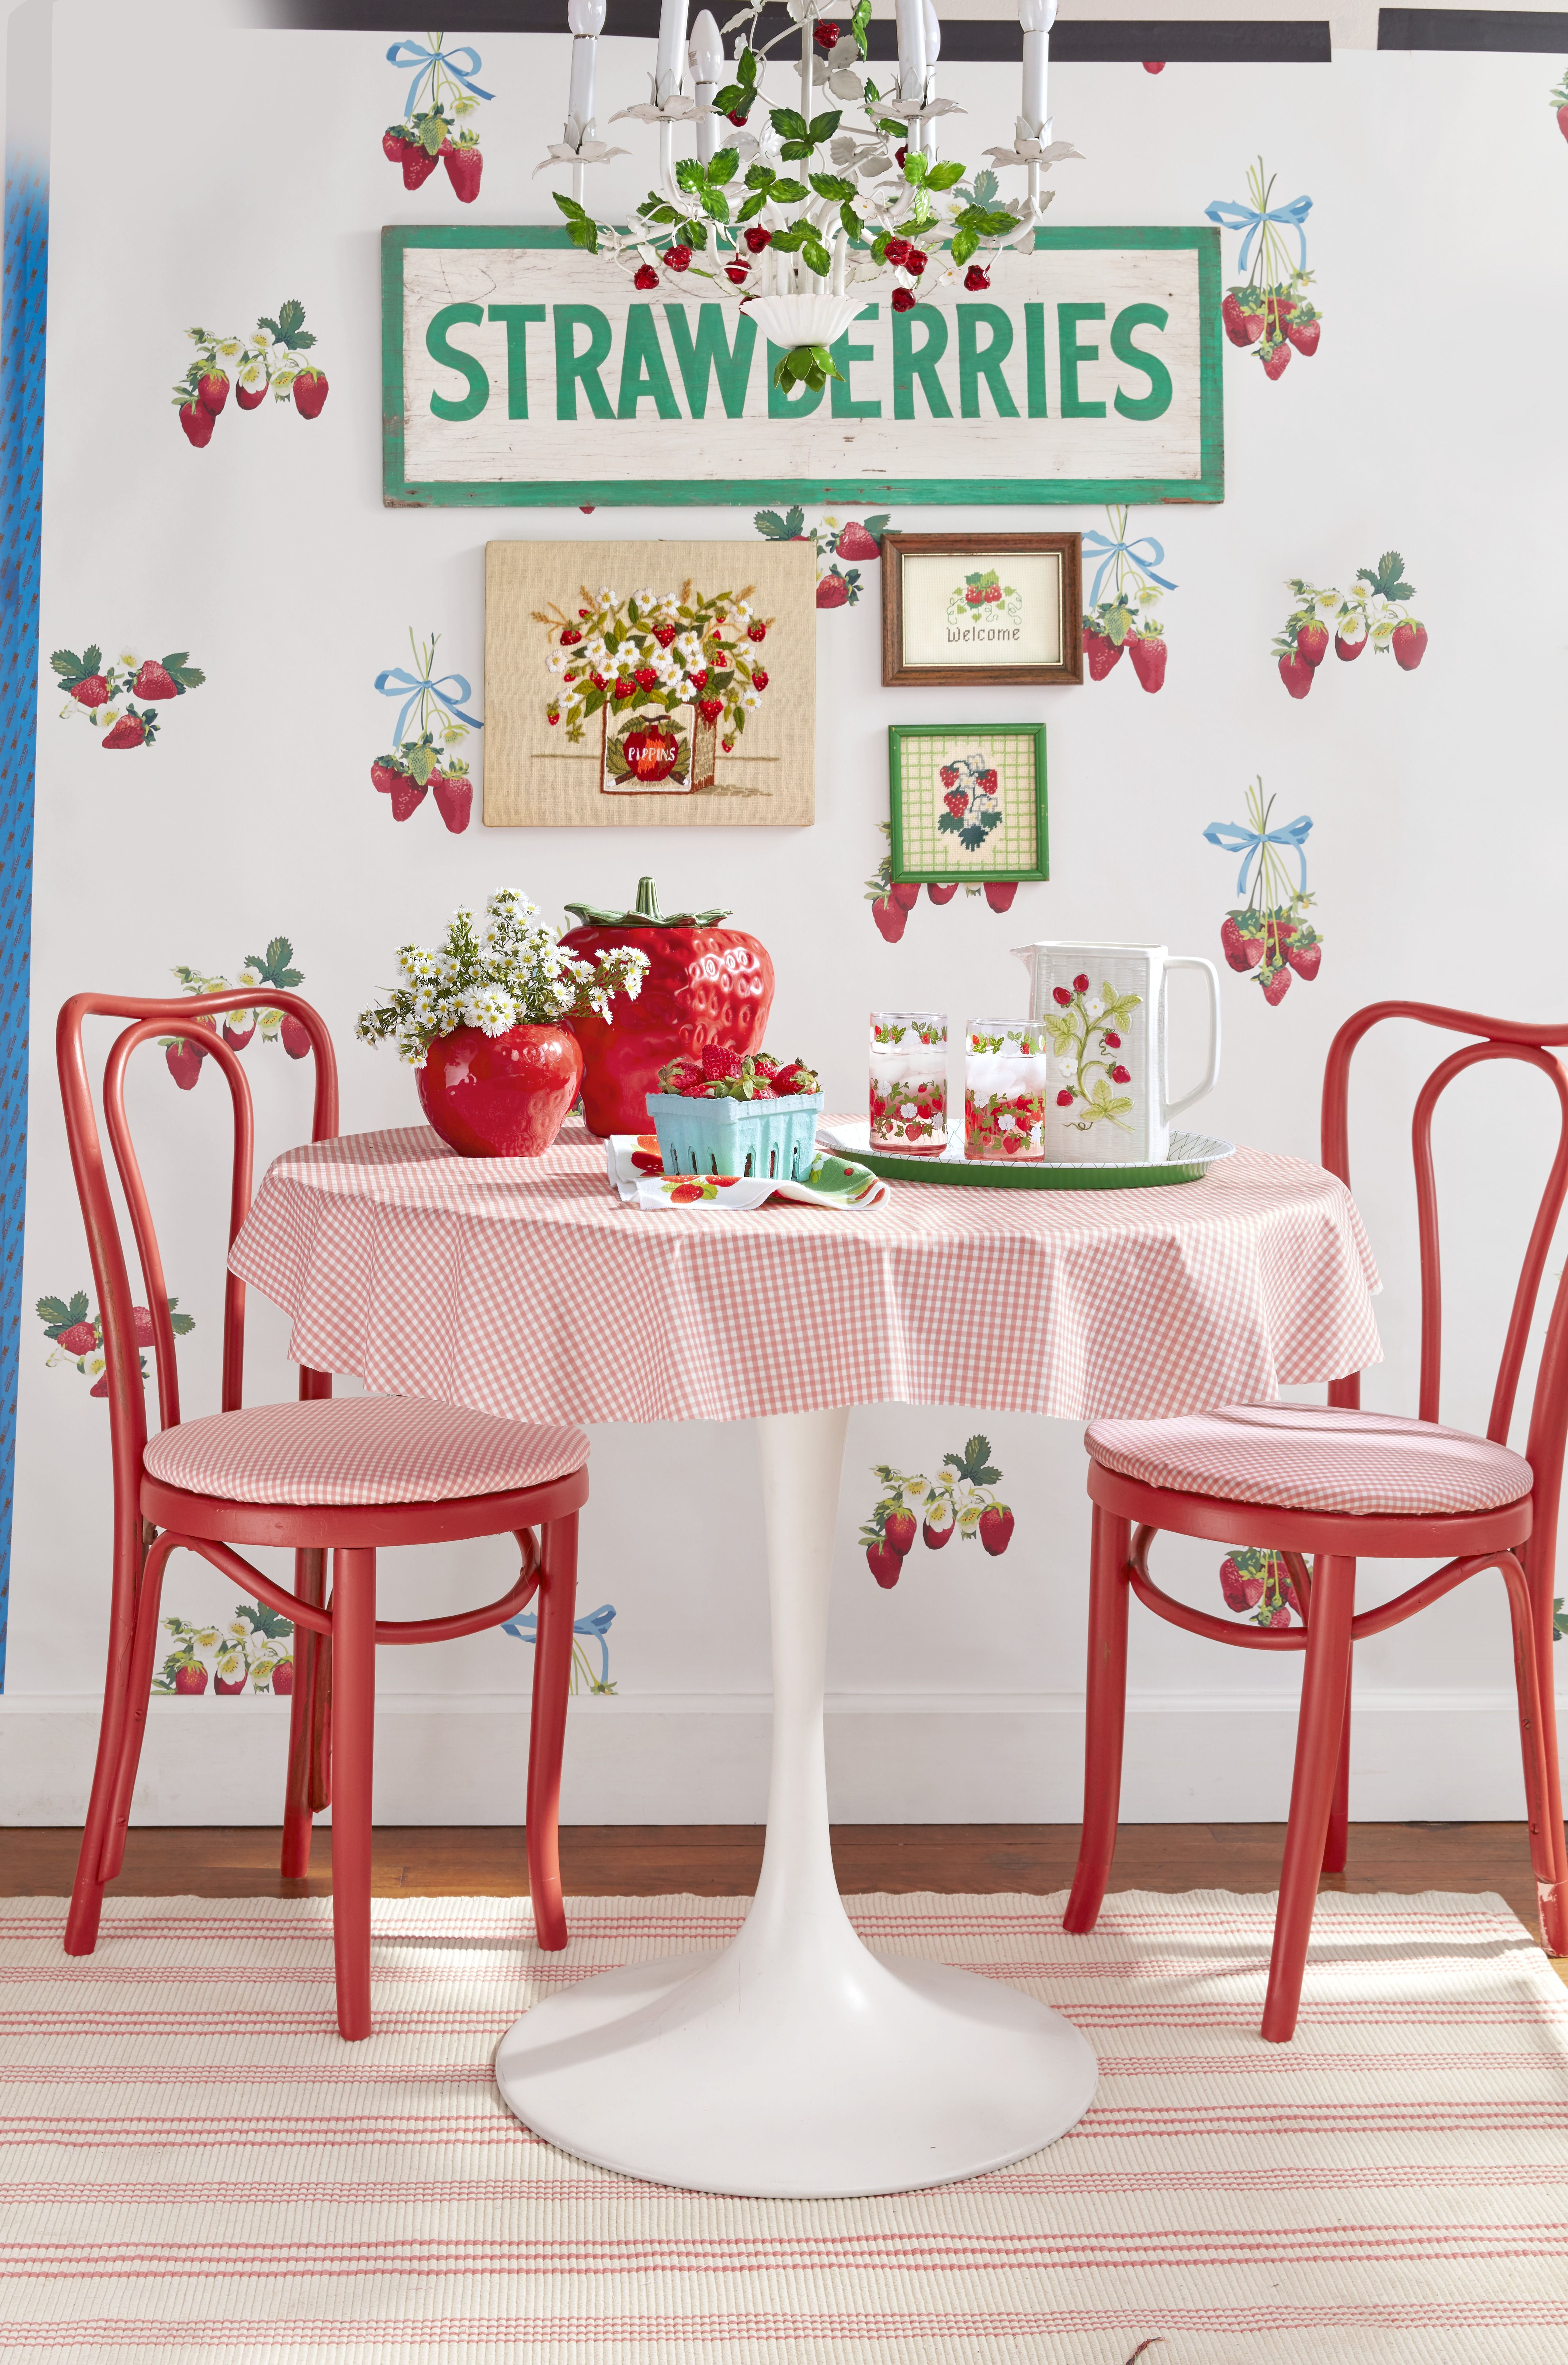 15 Best Kitchen Wallpaper Ideas How To Decorate Your With